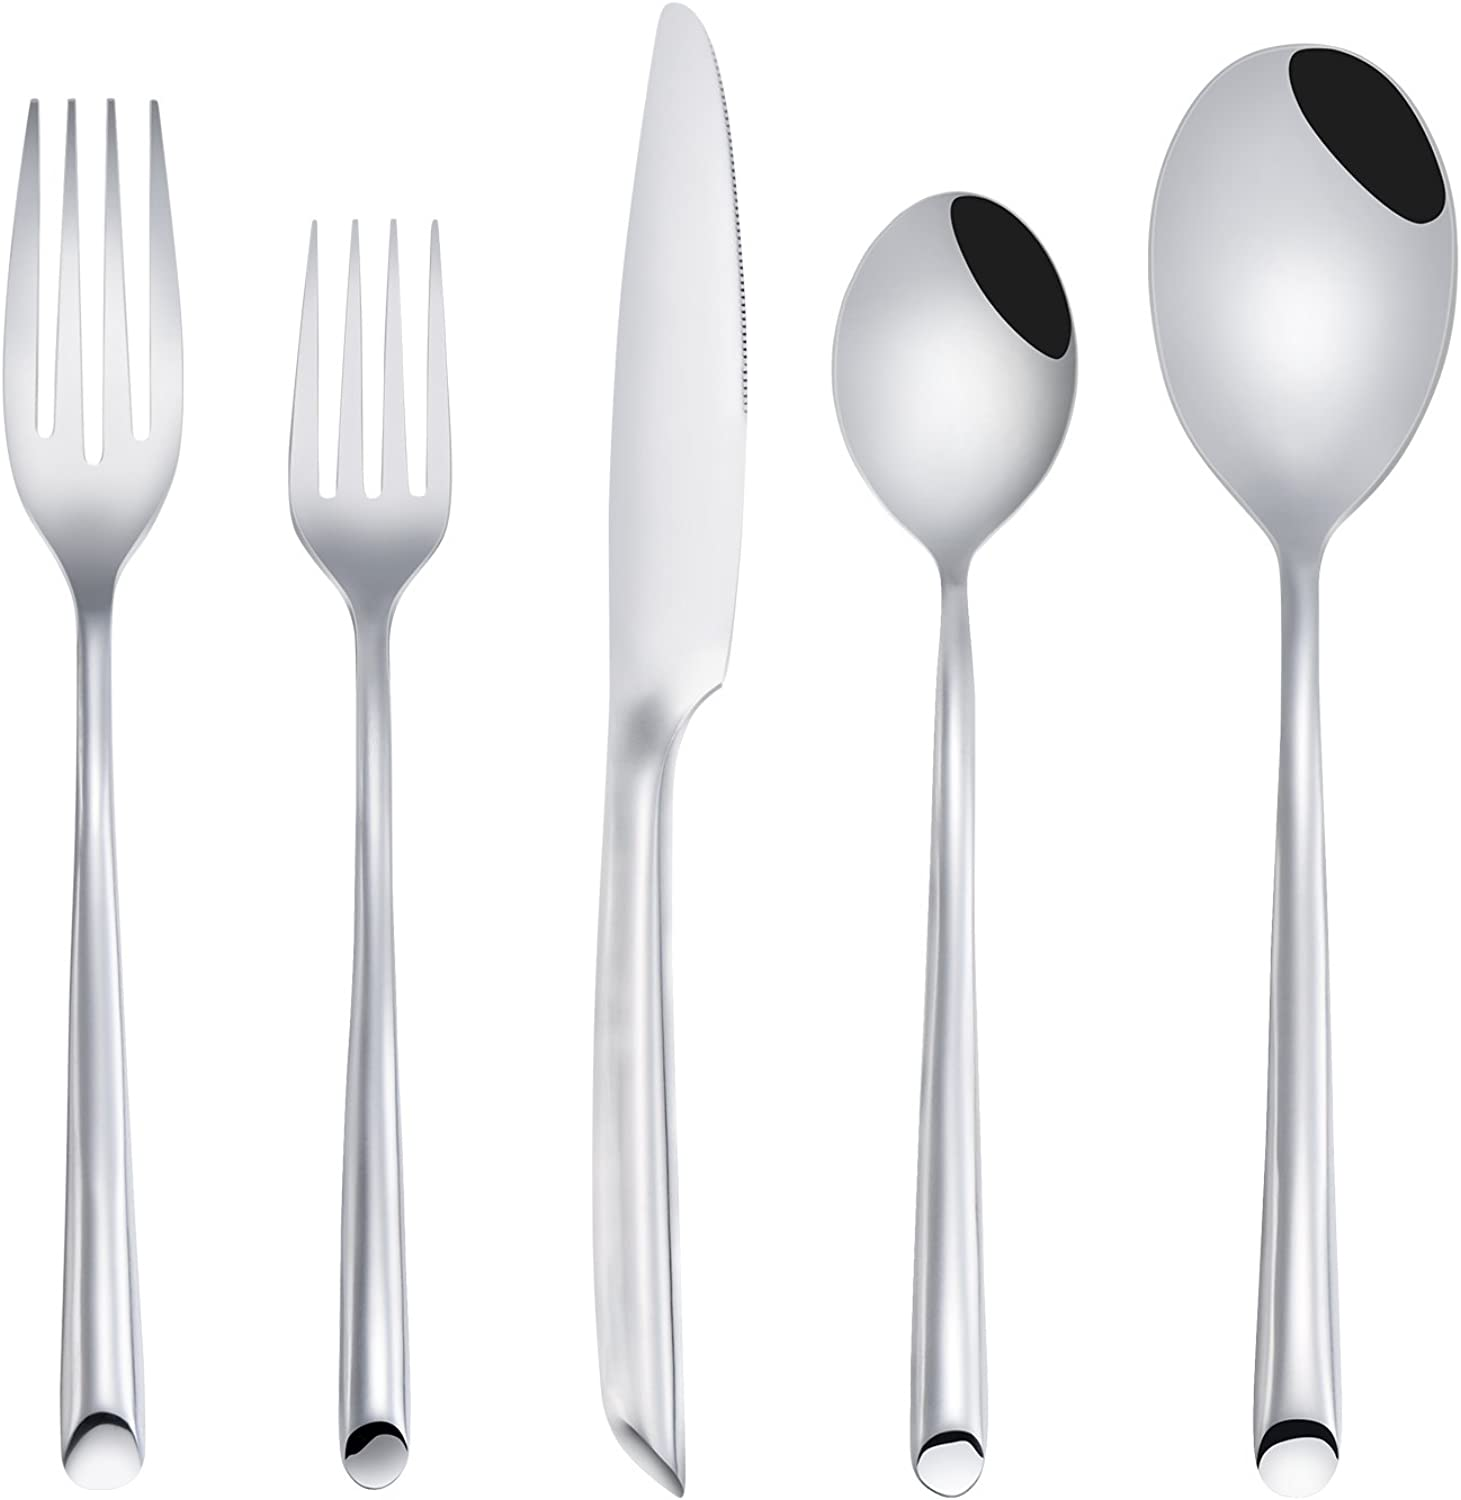 Deacory Flatware Set Satin Finish Stainless Steel Forged Wave with 20 Piece for Wedding Event Service for 4